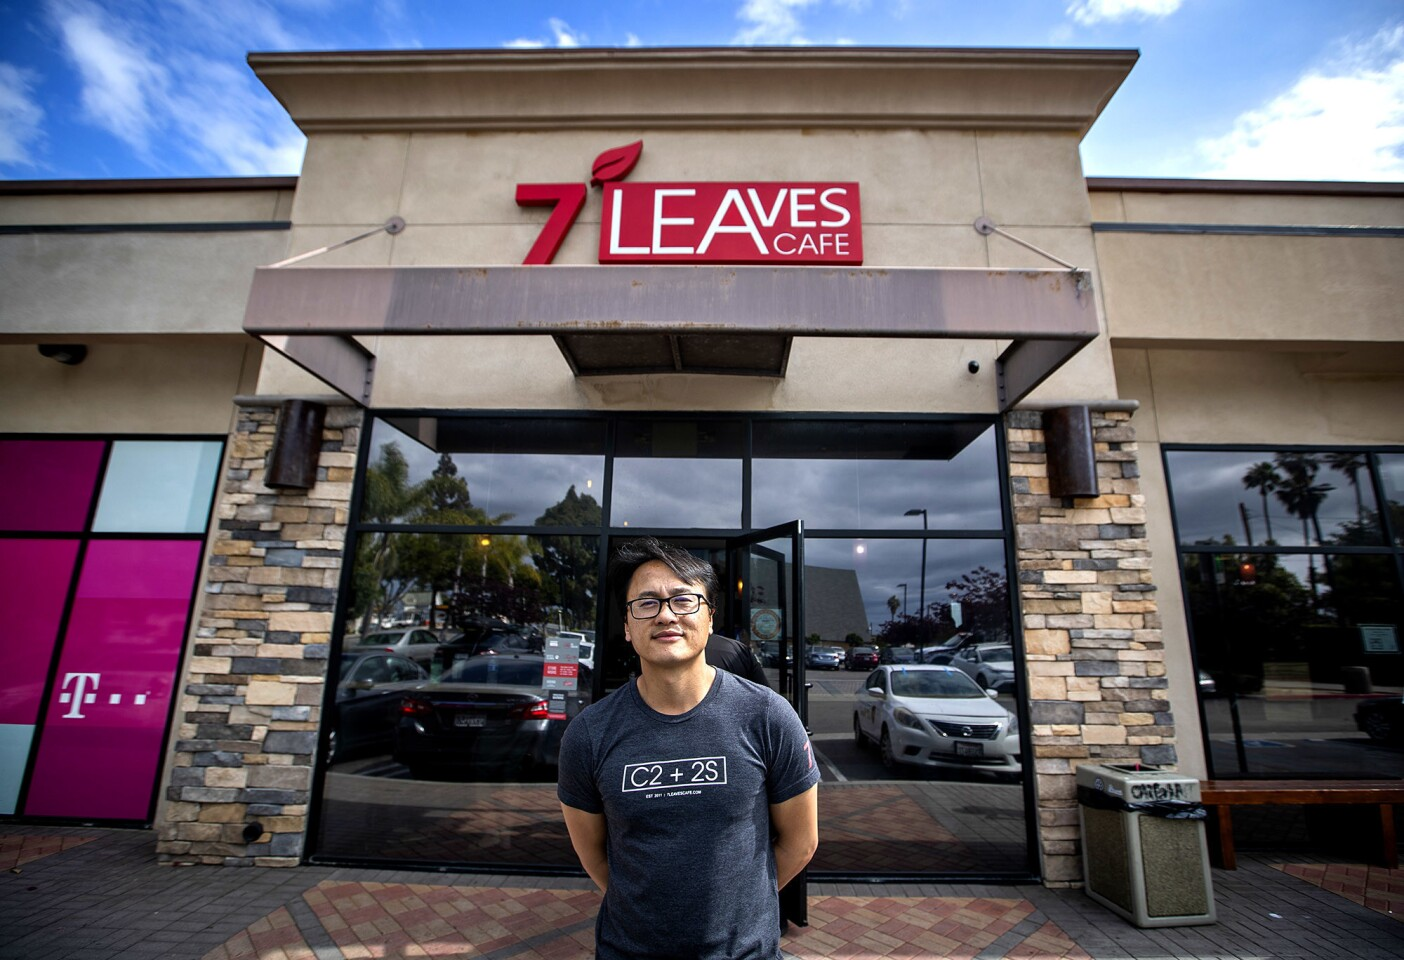 Son Nguyen, aka Sonny, stands outside 7 Leaves Cafe in Garden Grove, the second coffee shop the four brothers opened in Orange County.